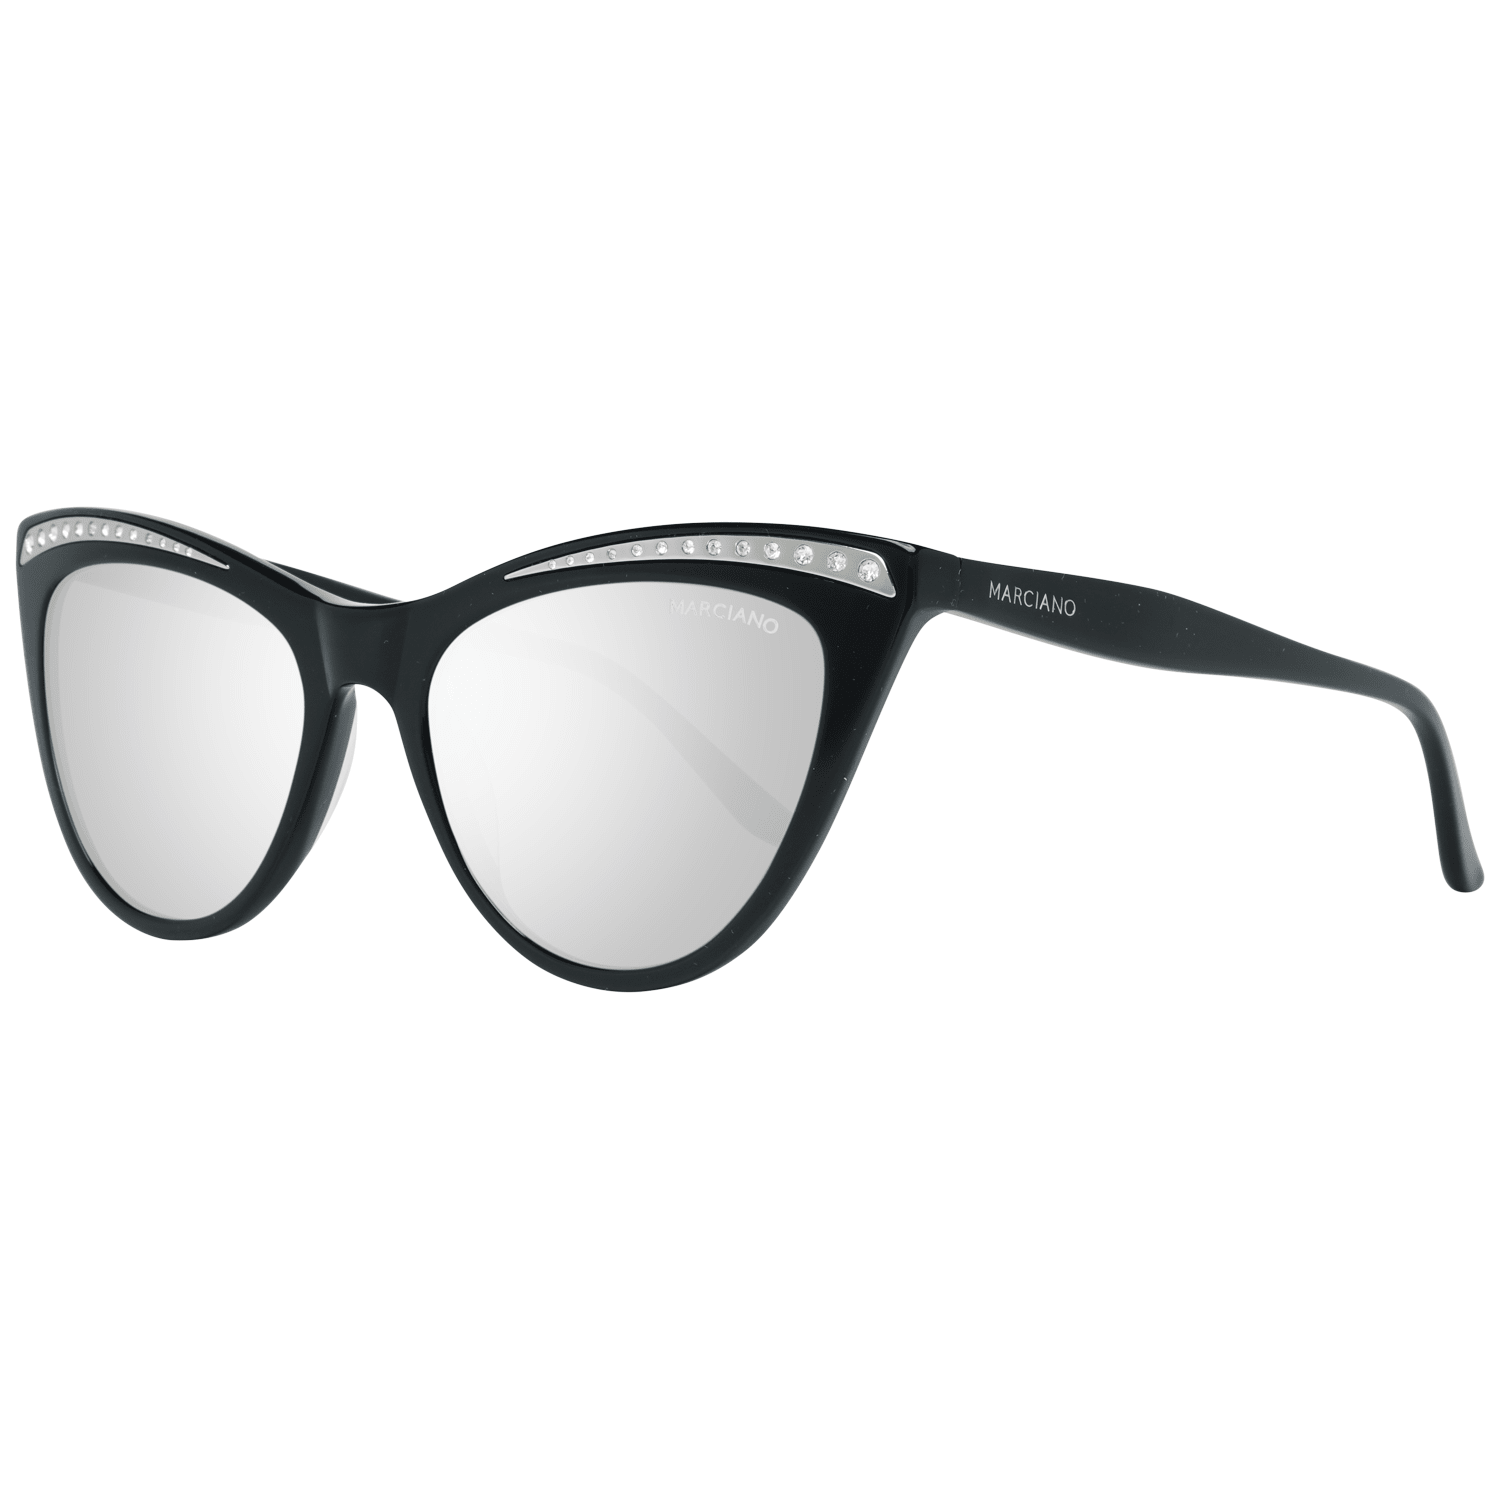 Guess By Marciano Women's Sunglasses Black GM0793 5301P